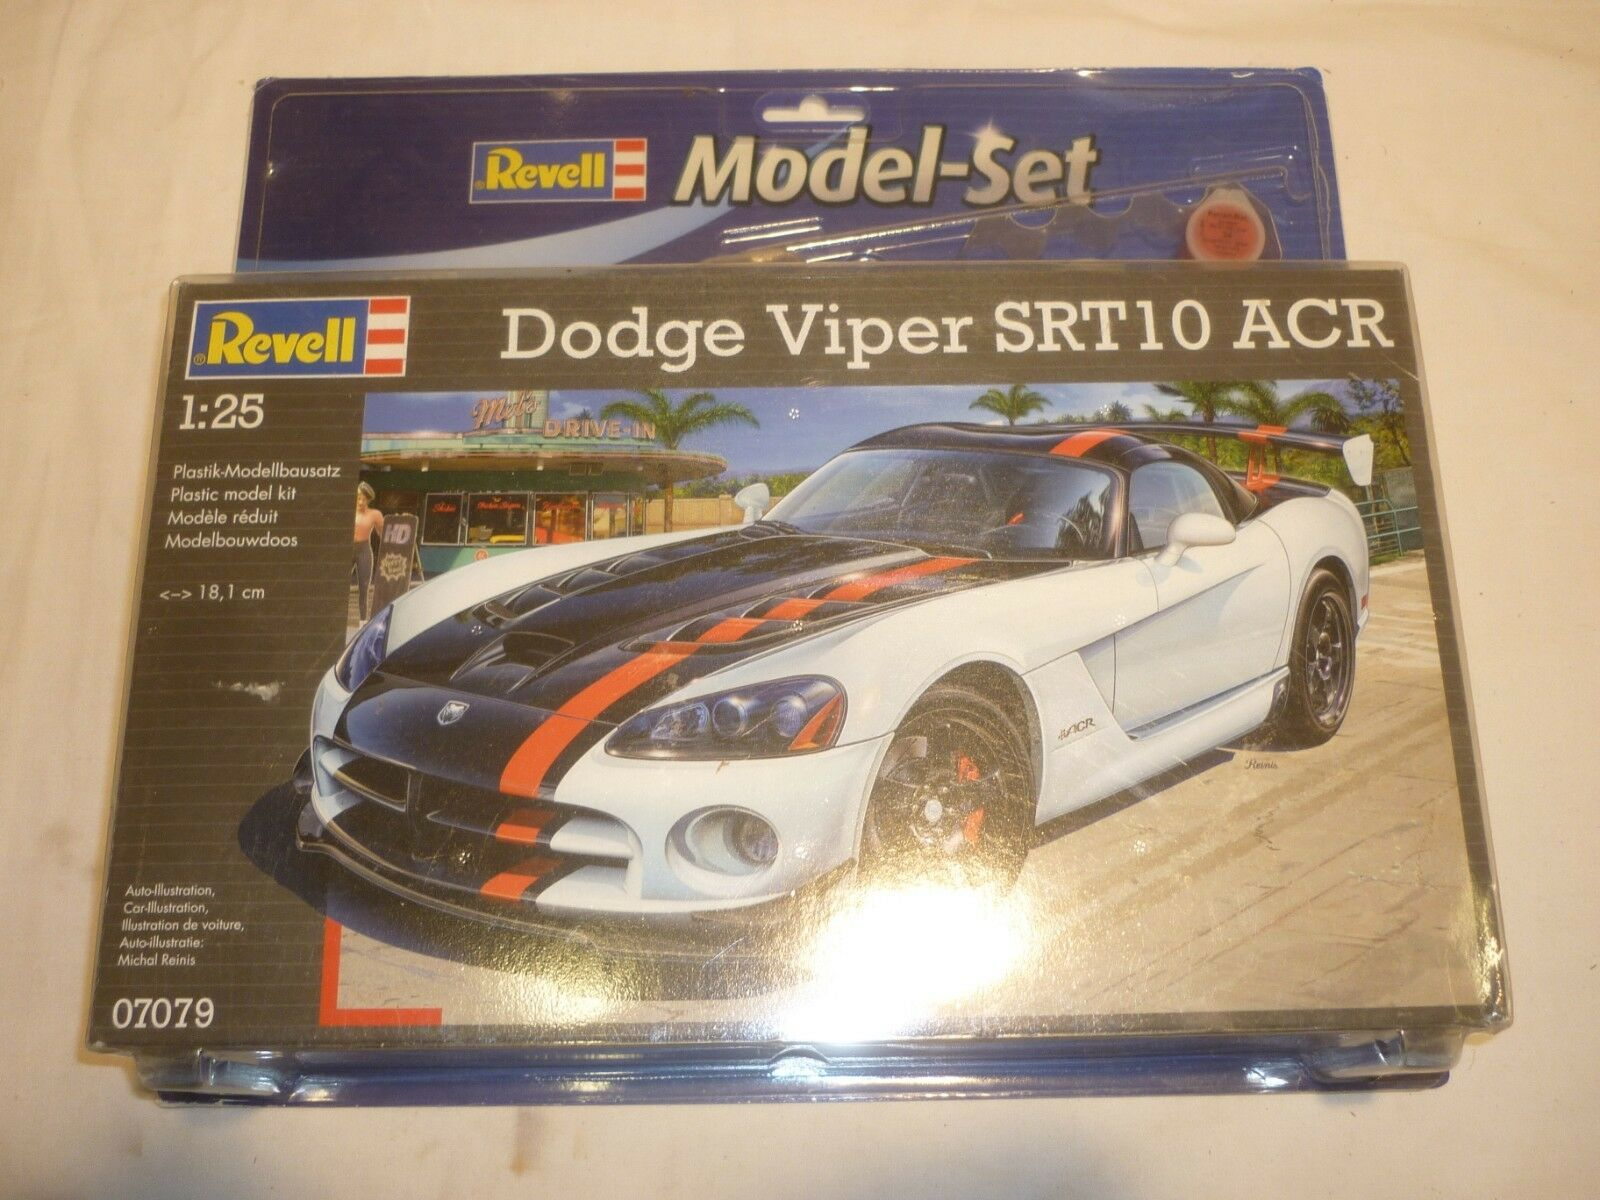 A sealed Revell un-built plastic kit of a Dodge viper SRT 10 ACR,  boxed